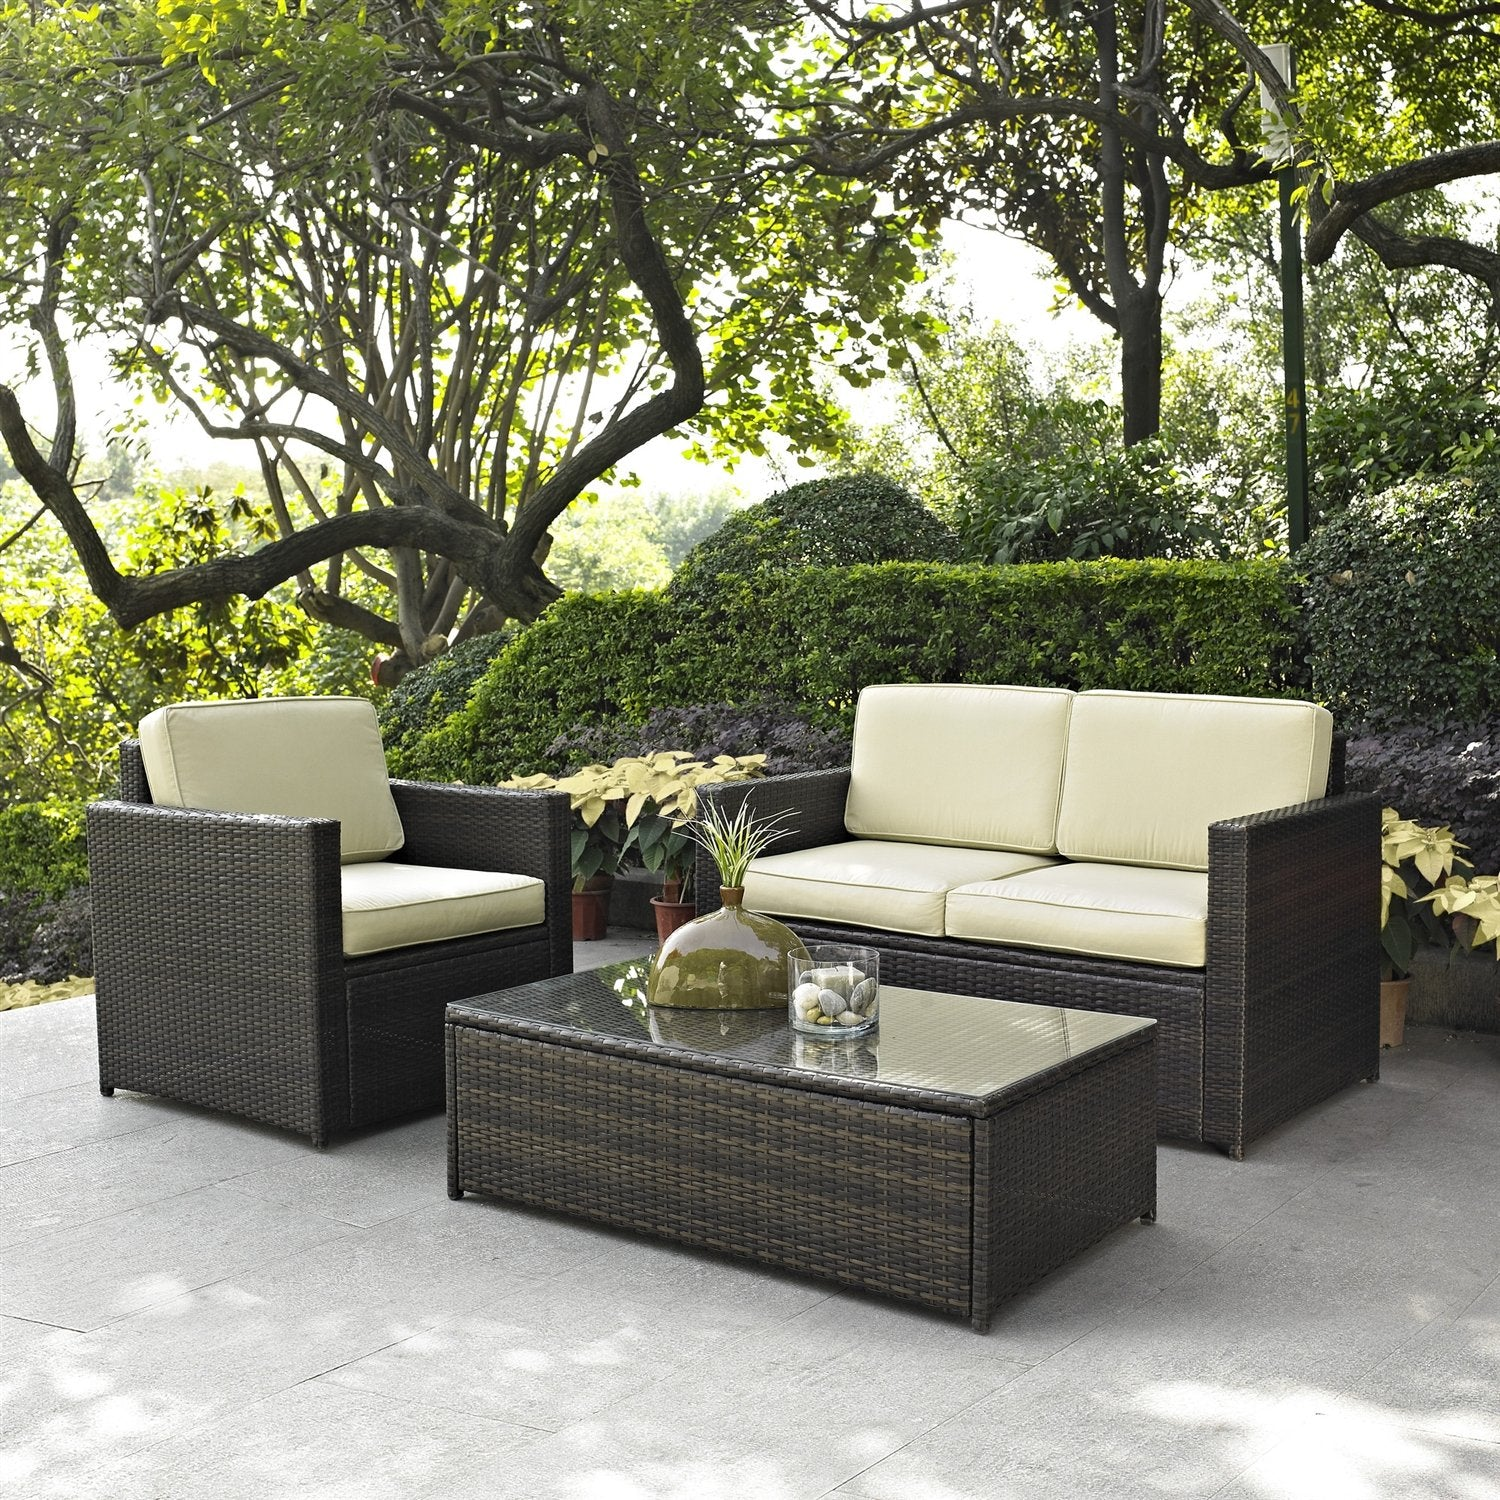 Patio Furniture Suppliers and Manufacturers – Hiltonfurntures